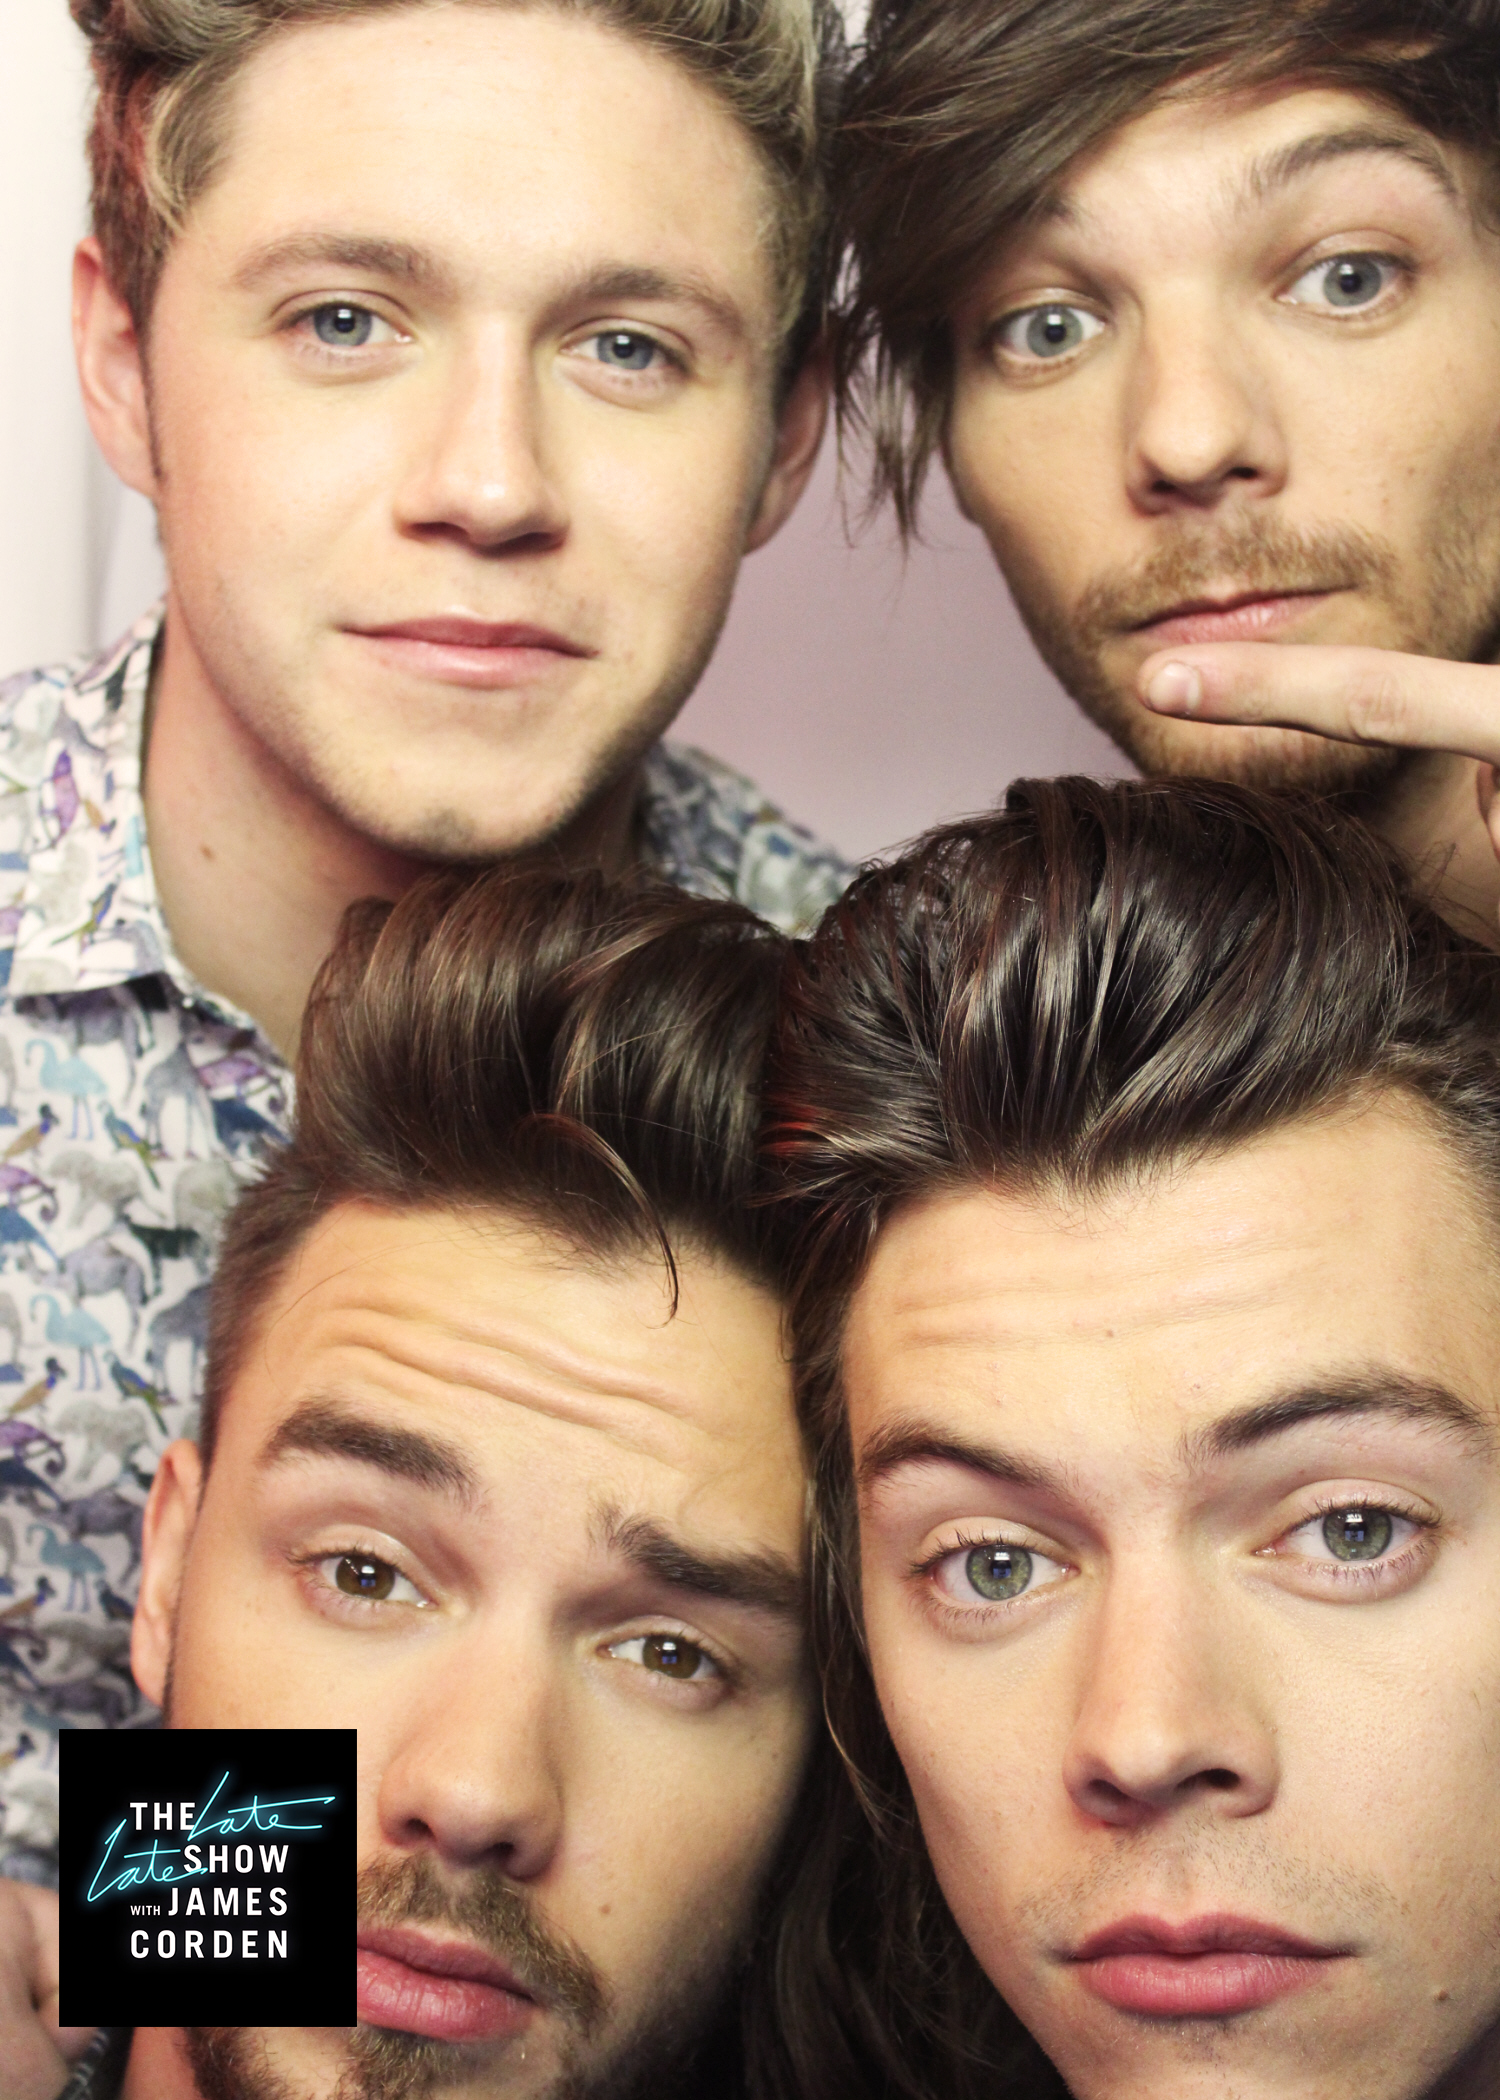 One Direction nailed their first photo booth picture.